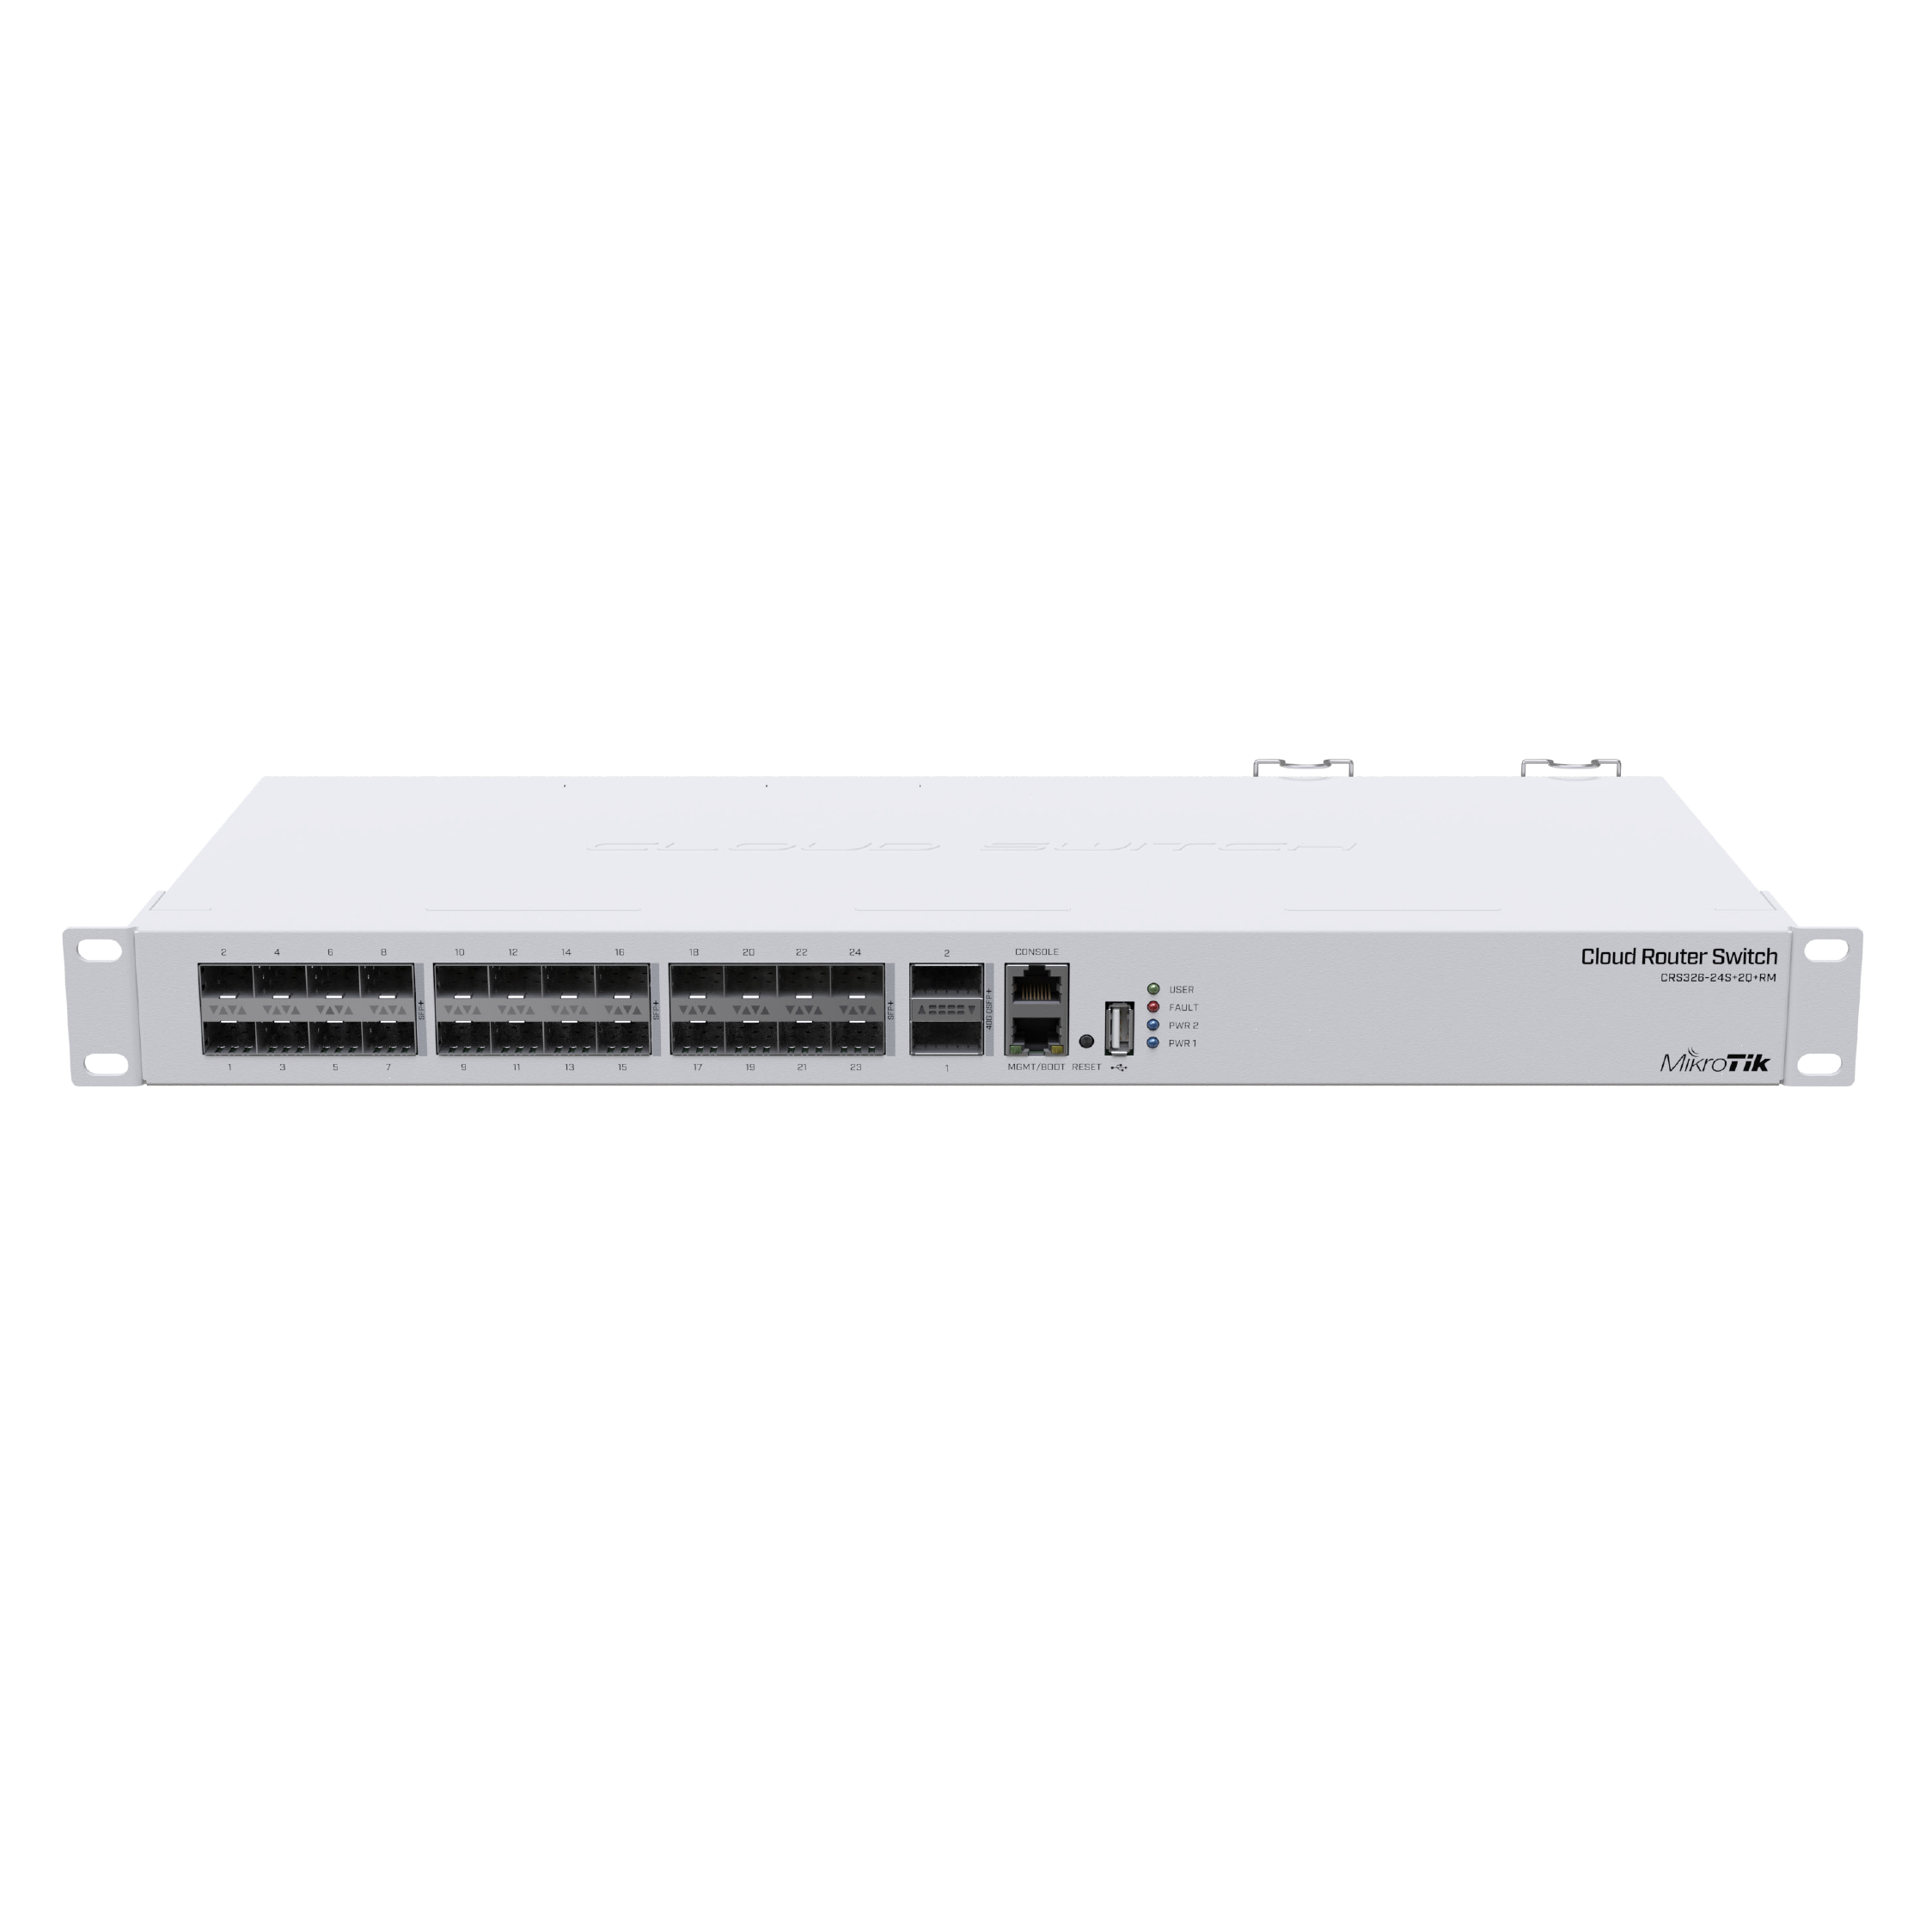 MikroTik CRS326-24S+2Q+RM Cloud Router Switch